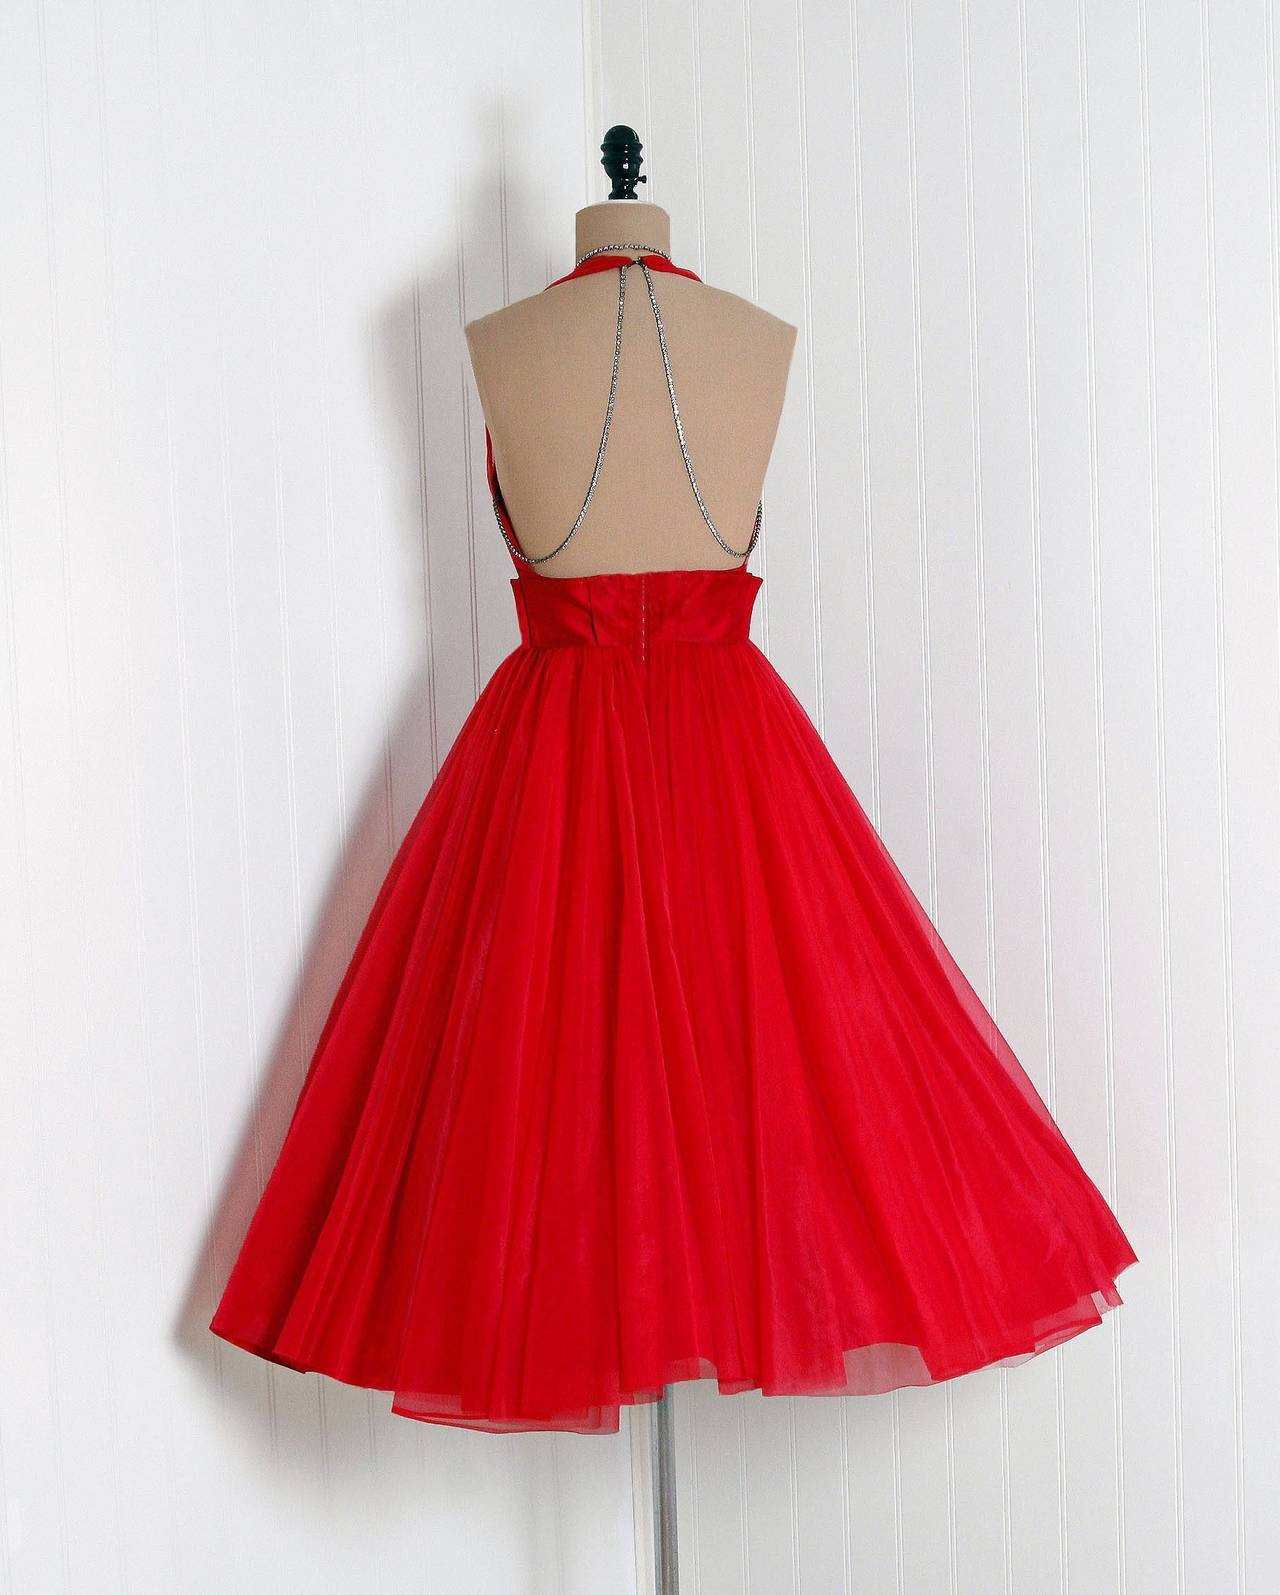 1950's Lilli Diamond Ruby-Red Chiffon Rhinestone Halter Backless Party Dress In Excellent Condition For Sale In Beverly Hills, CA